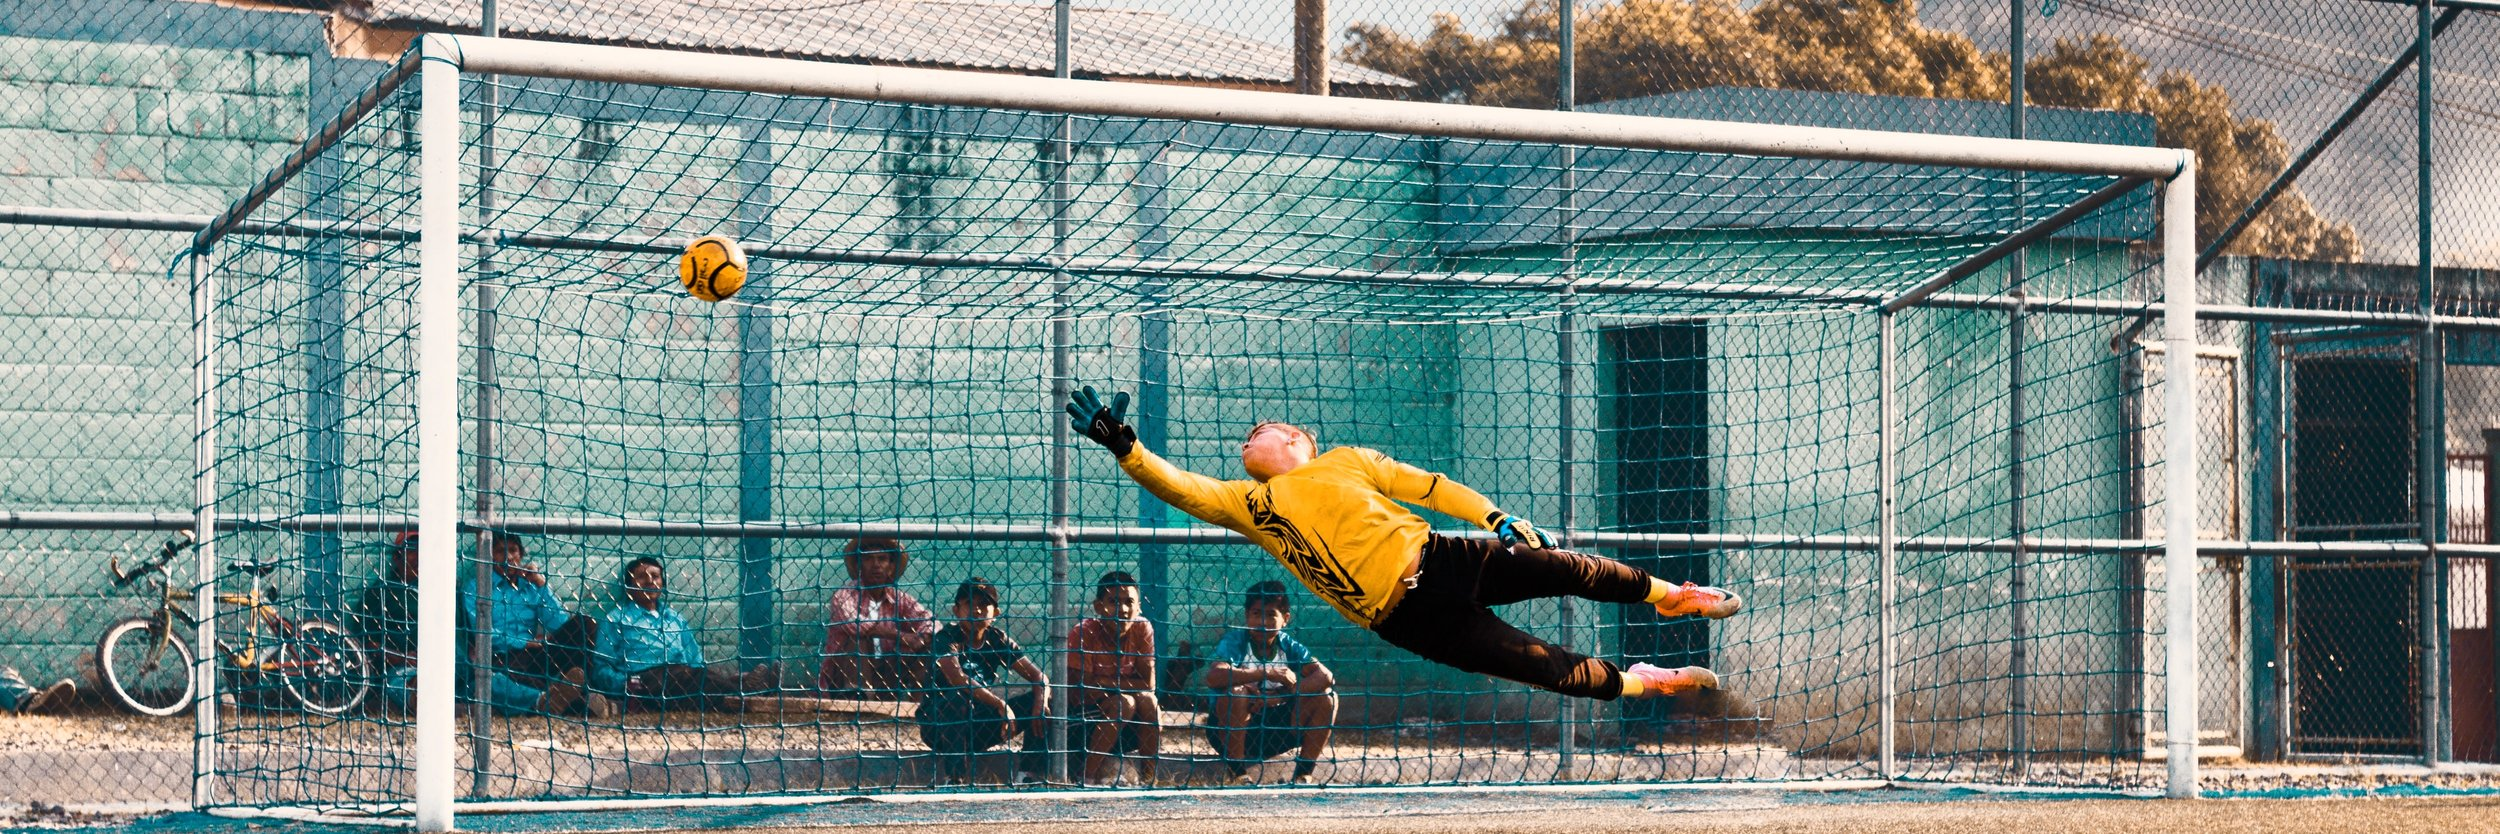 We cover all sports and activities. -